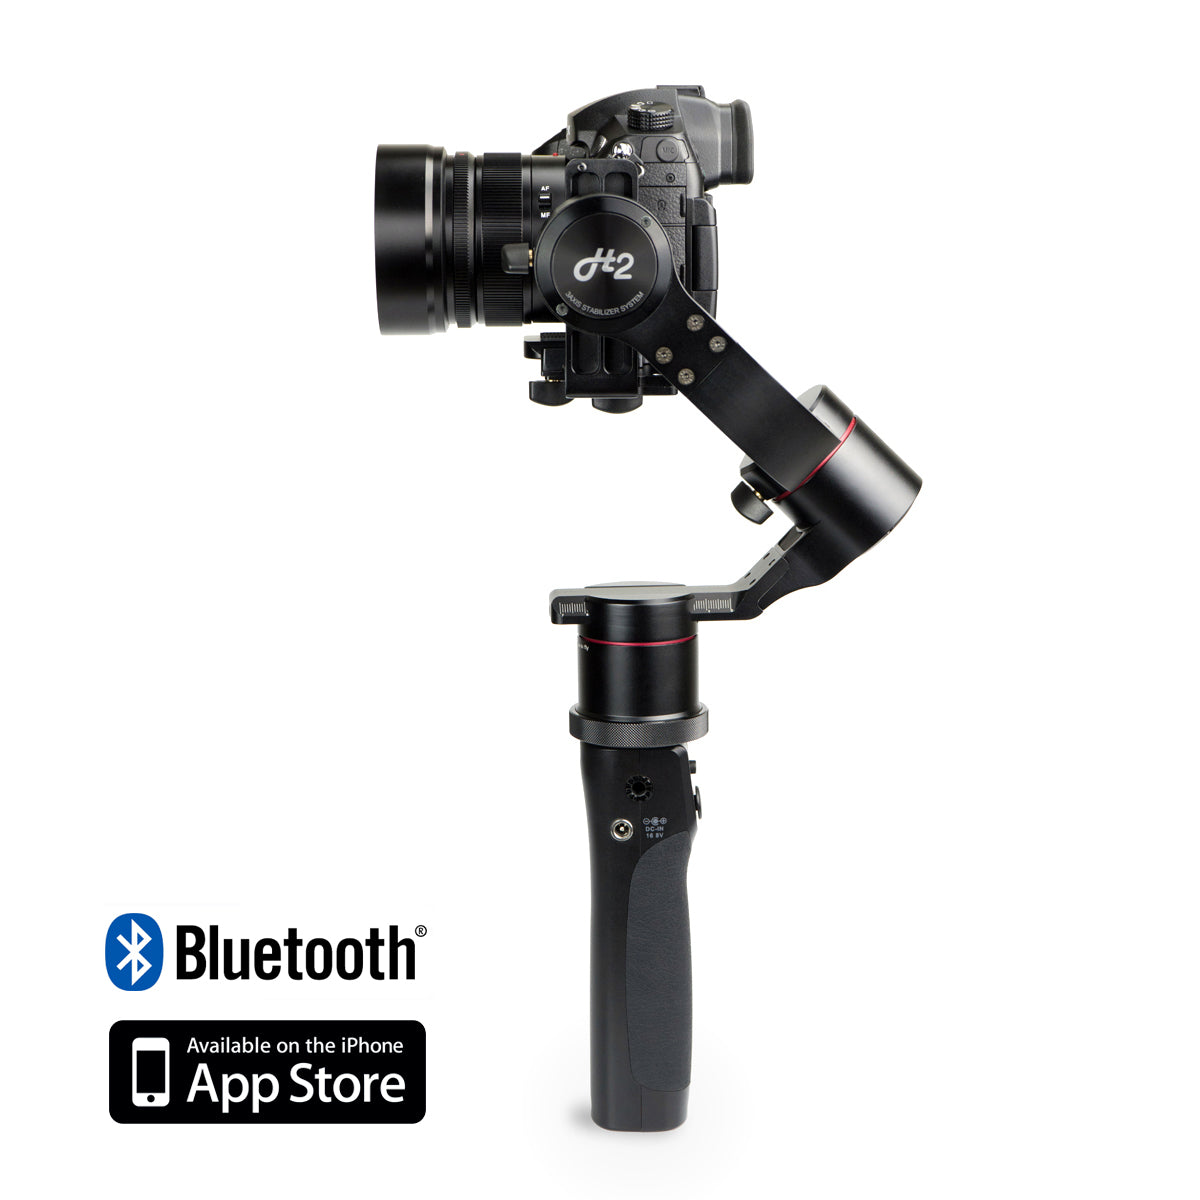 Pilotfly H2-45 3-Axis Handheld gimbal for mirrorless and DSLR cameras with a direct view of your camera display.